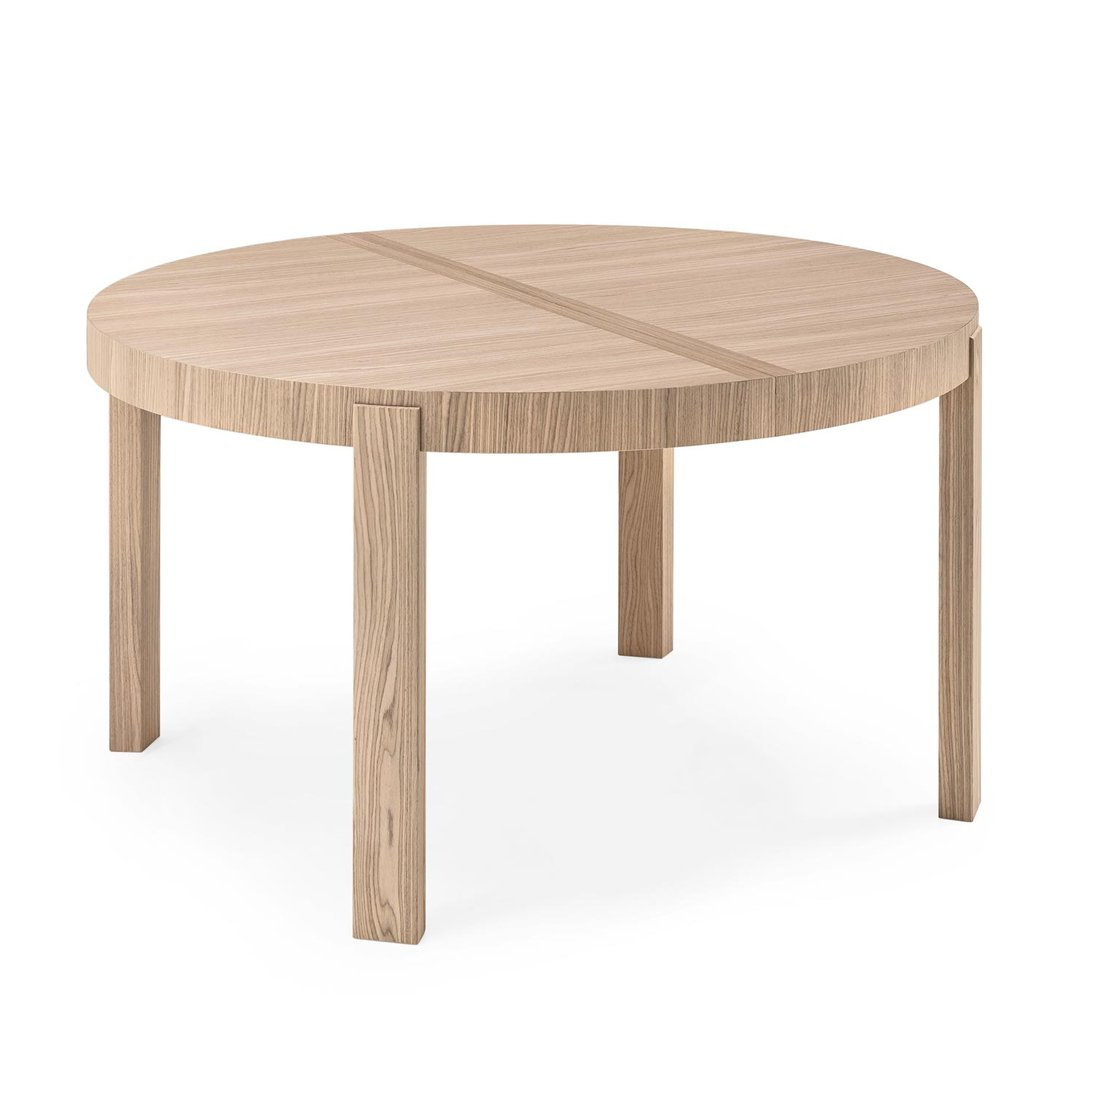 Table de repas ronde extensible atelier meubles et for Table ronde extensible design